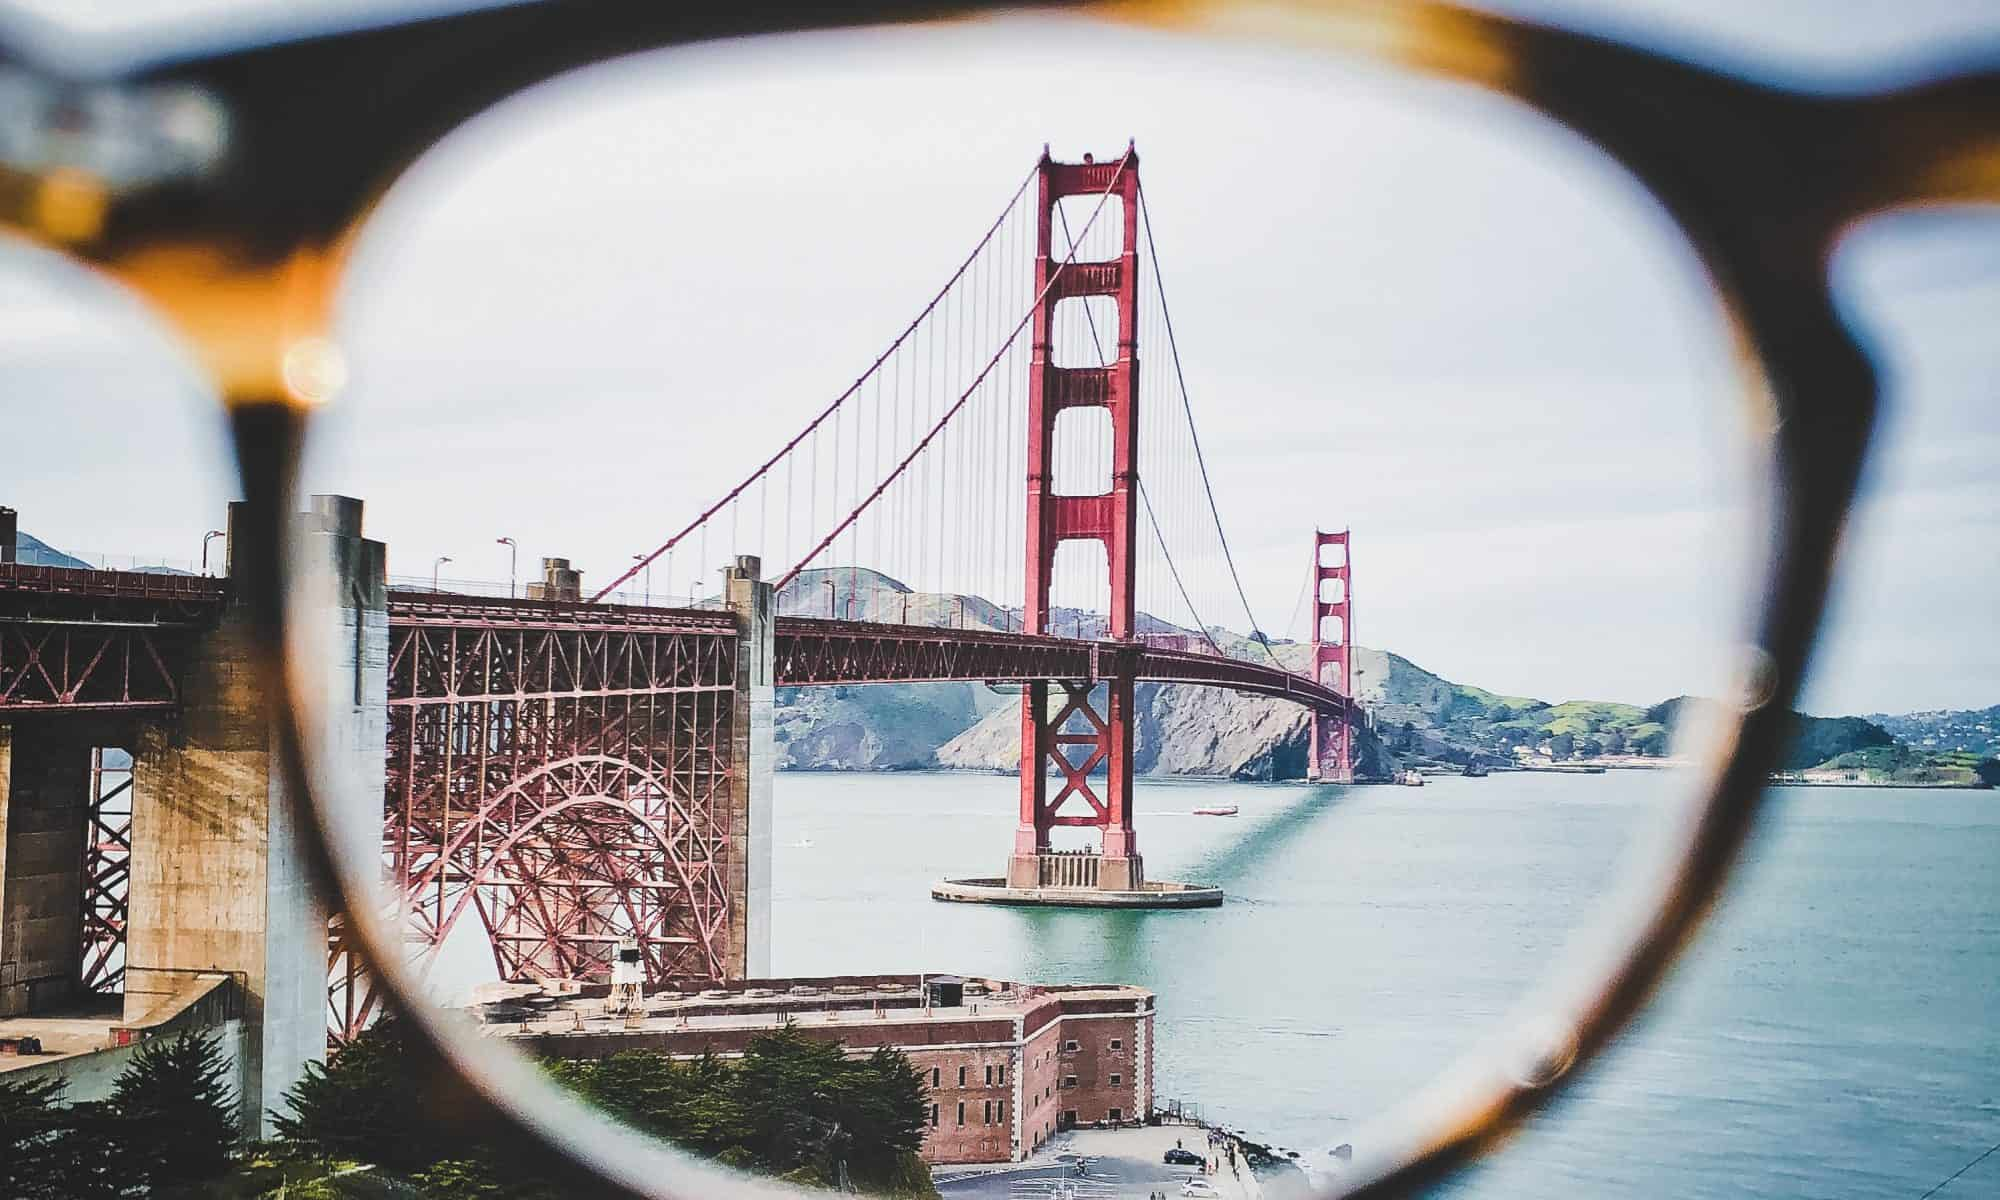 photo of a bridge through the lens of a pair of glasses